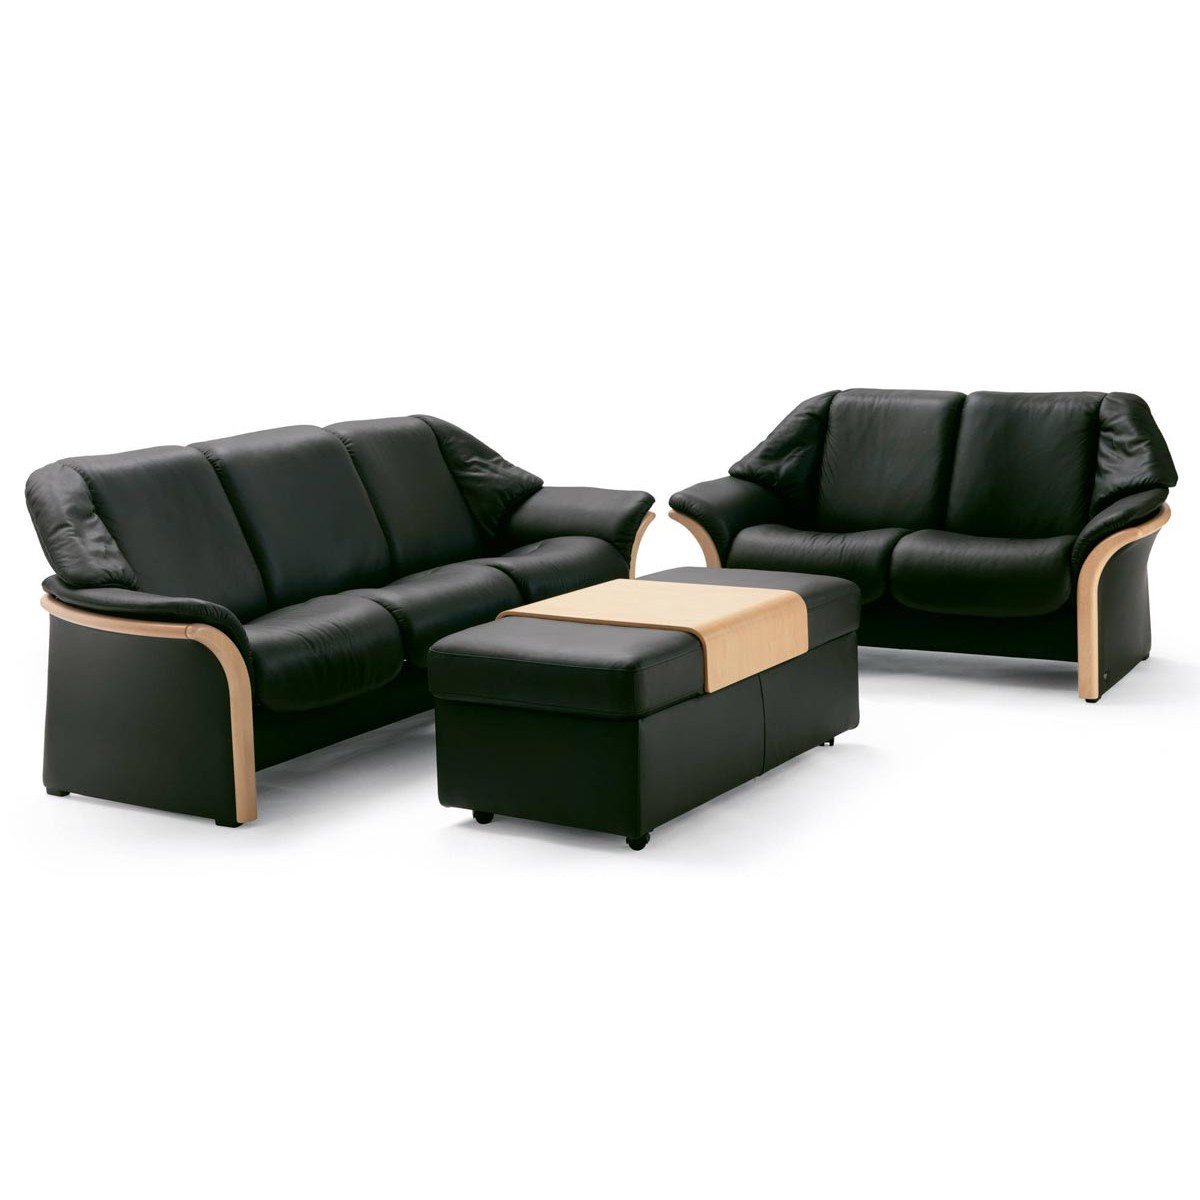 Aufstehhilfe Sofa Stressless Sessel Youtube